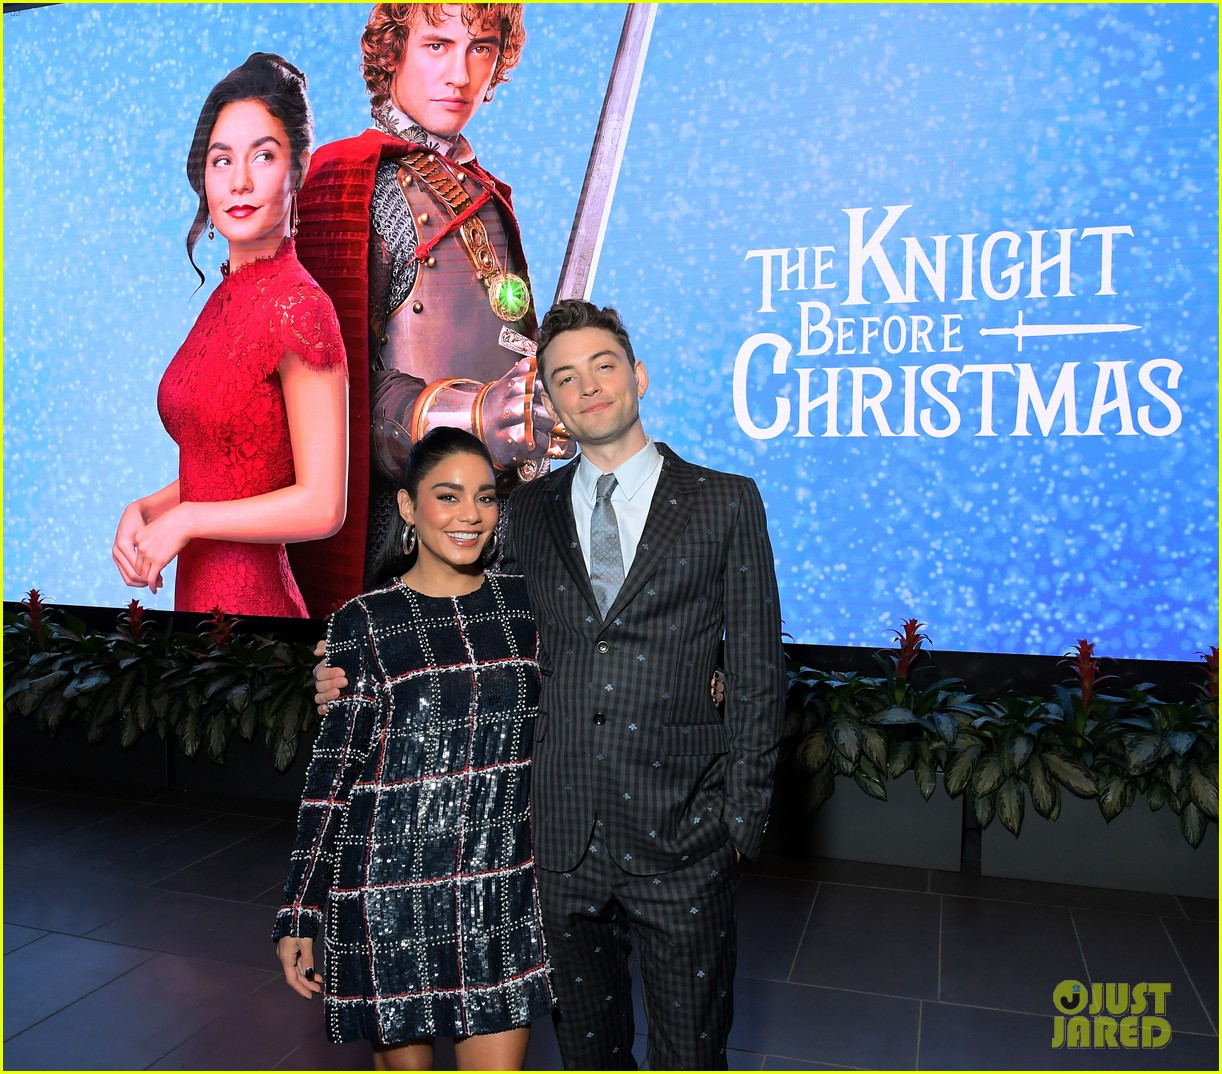 the knight before christmas - photo #9